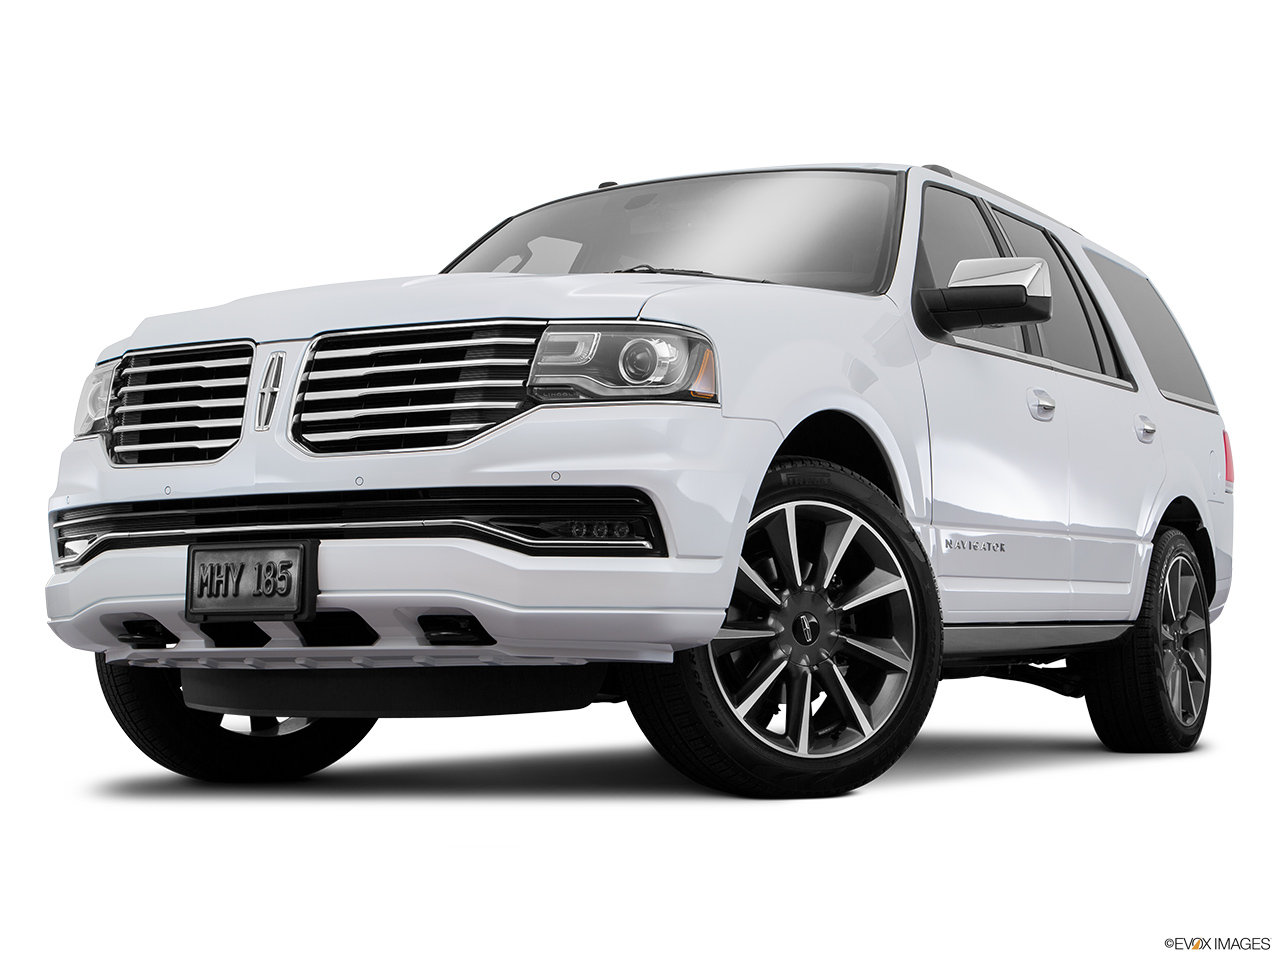 2016 Lincoln Navigator Reserve Front angle view, low wide perspective.